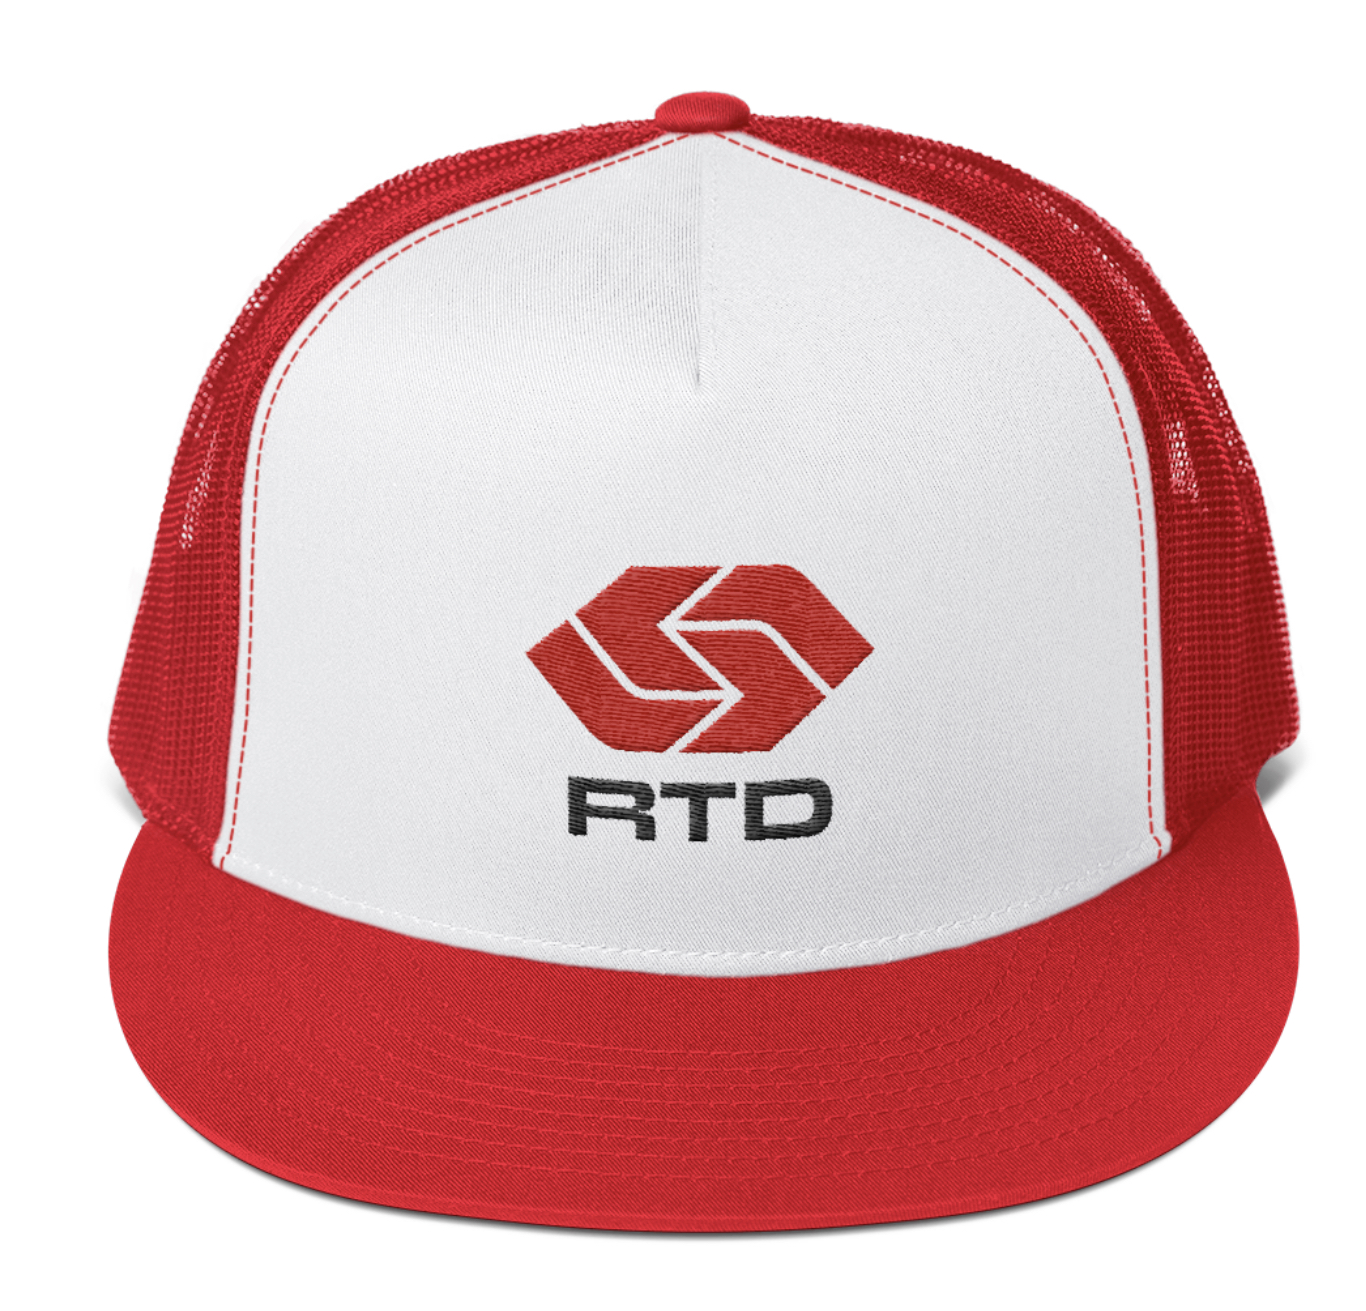 Metro Shop: Go vintage with RTD gear - The Source